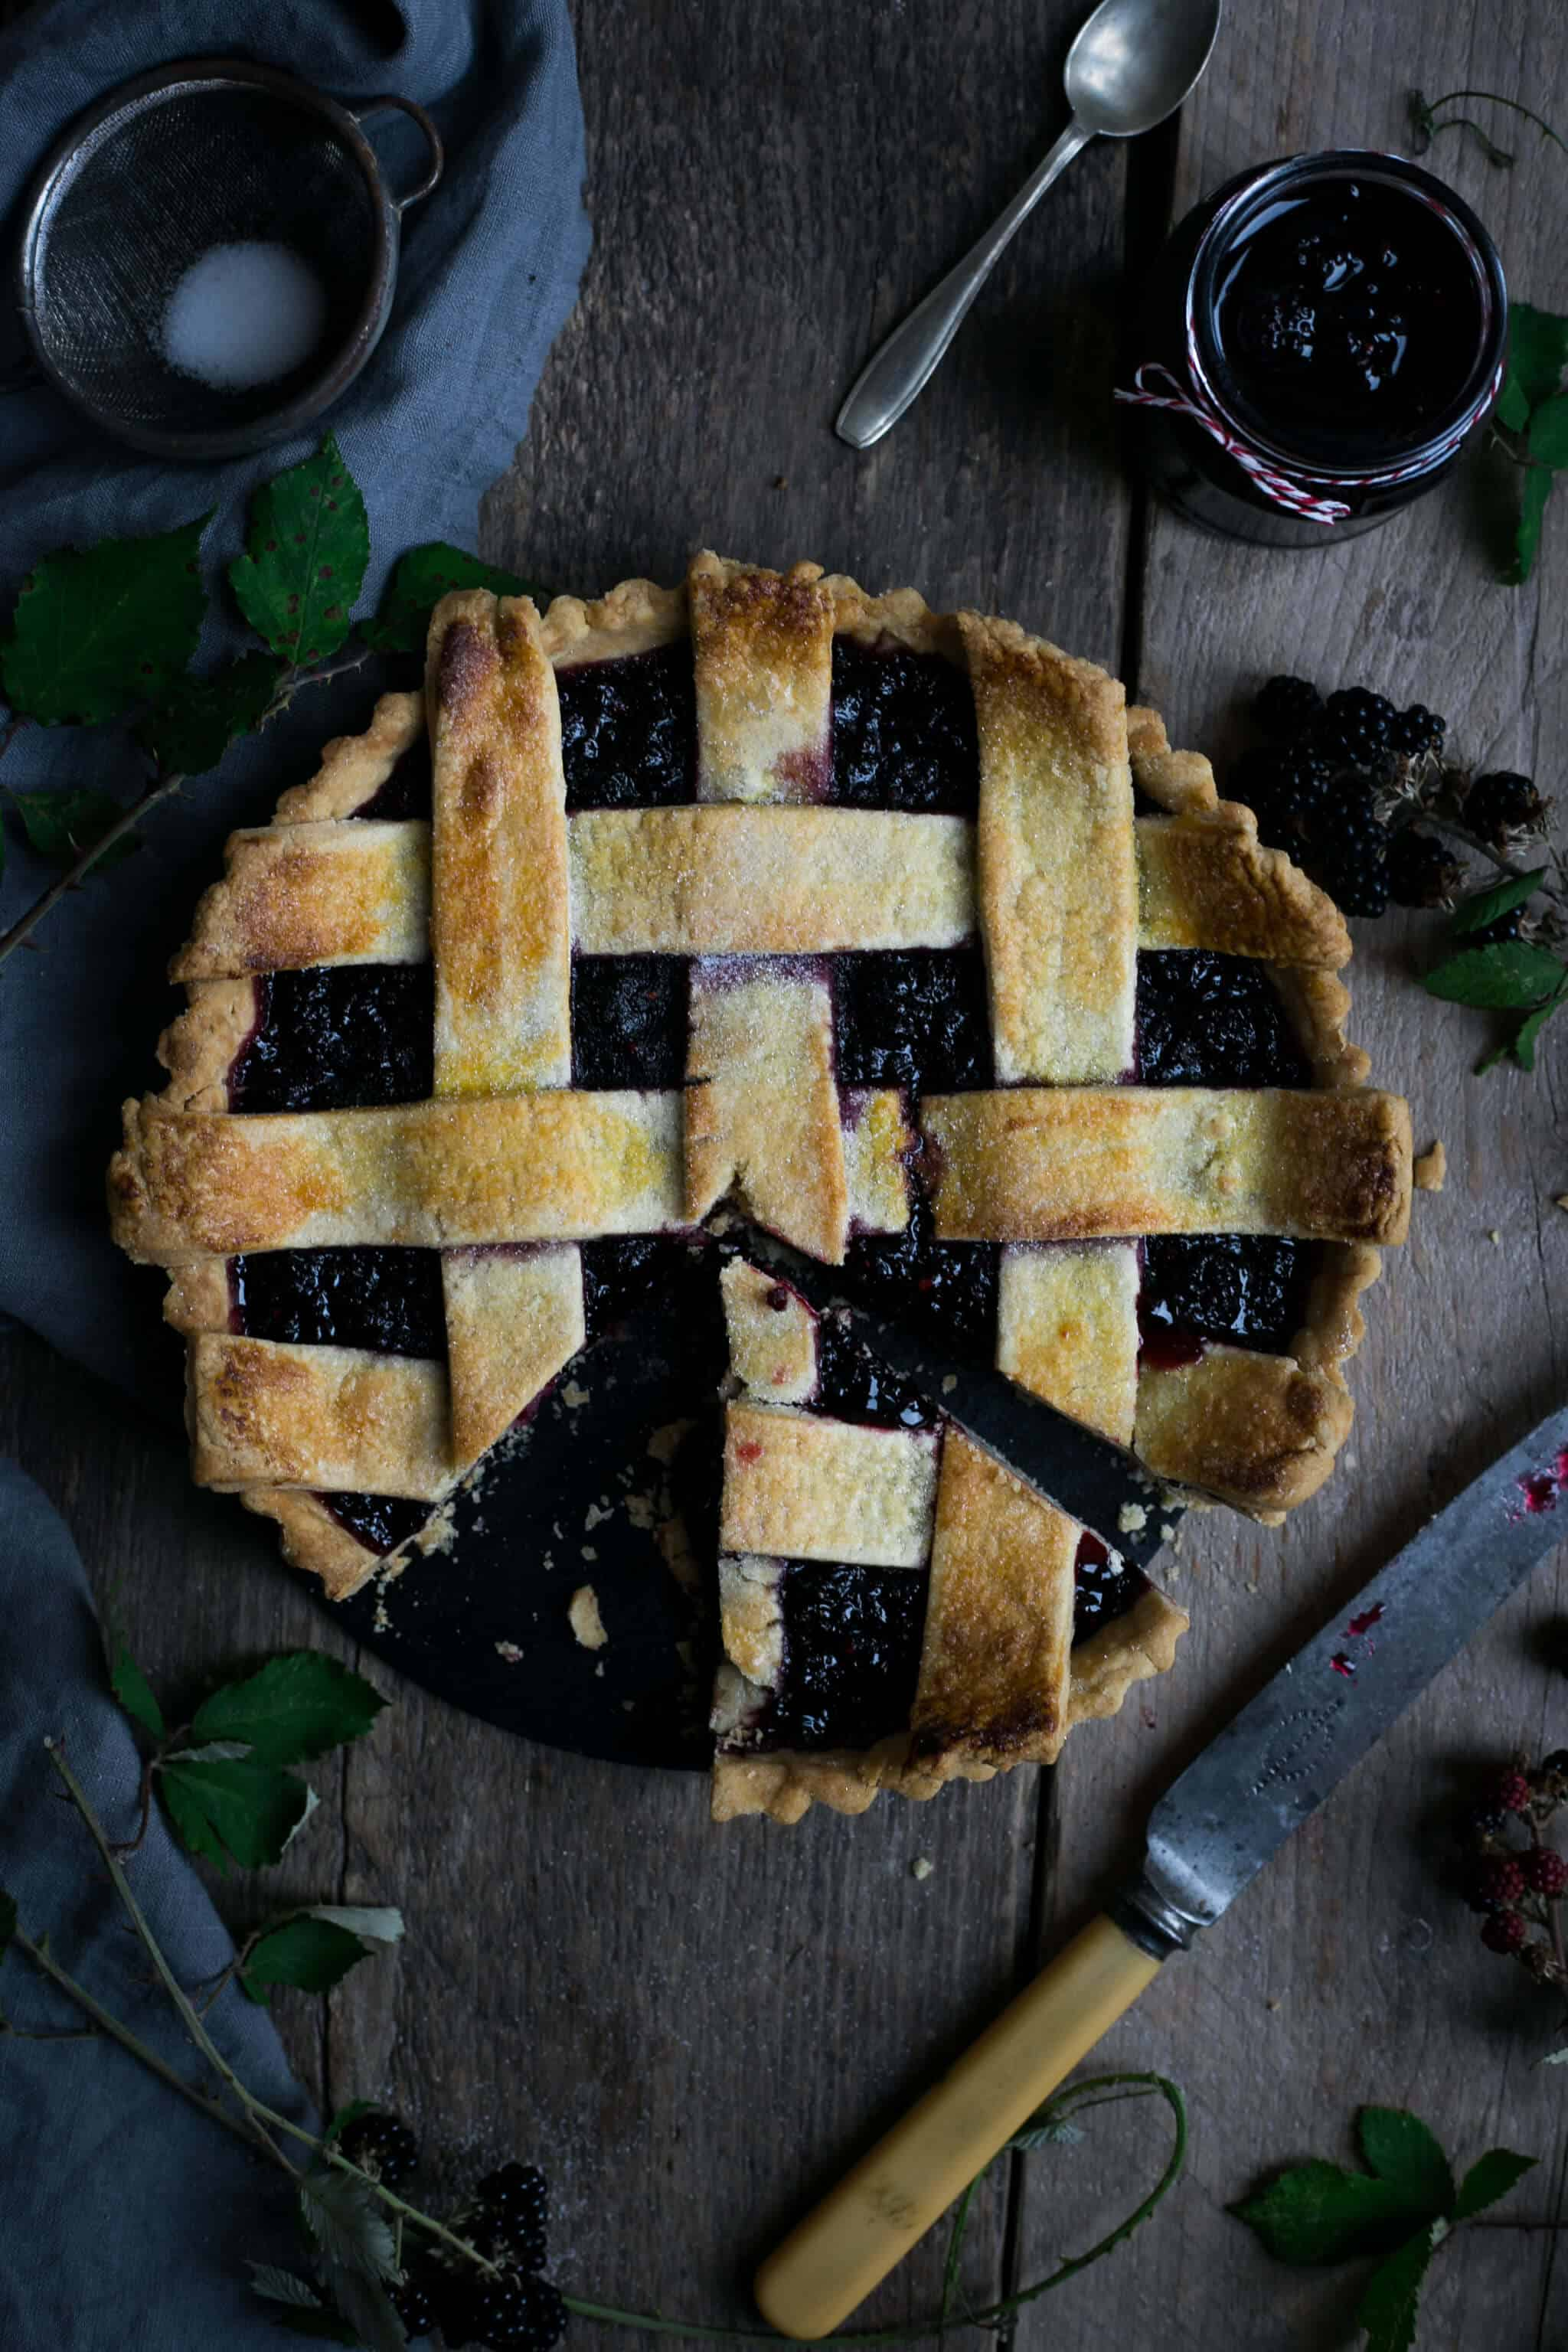 Blackberry jam lattice tart | via @annabanana.co